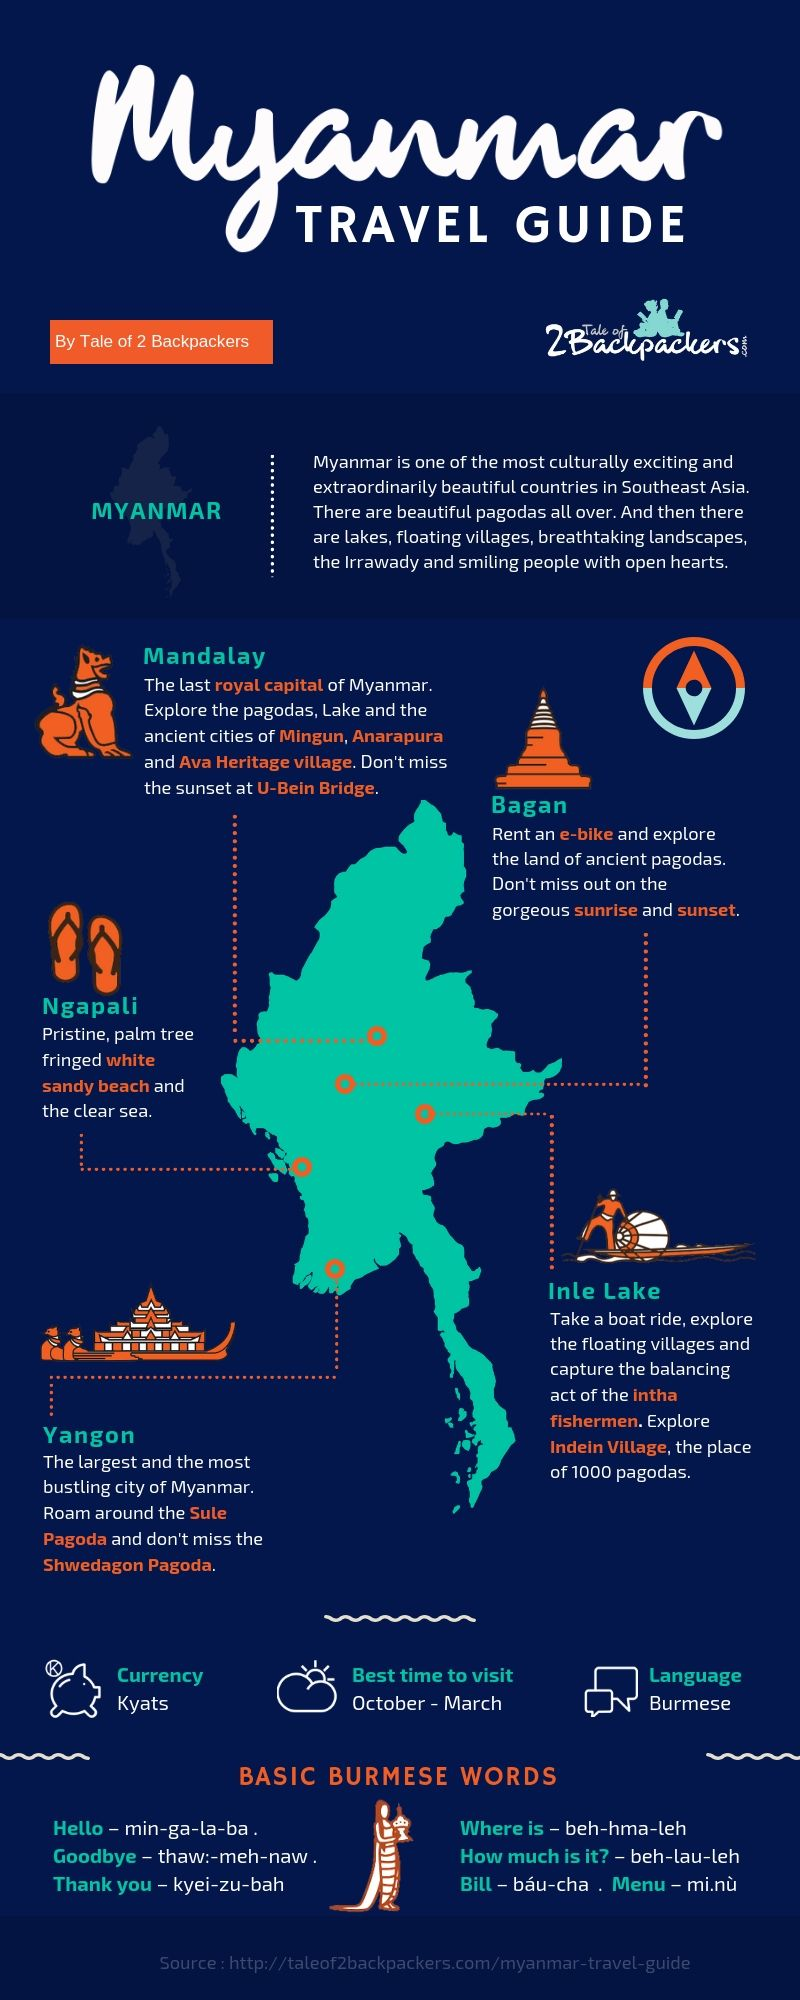 An infographic about myanmar backpacking trip - a complete Myanmar travel guide